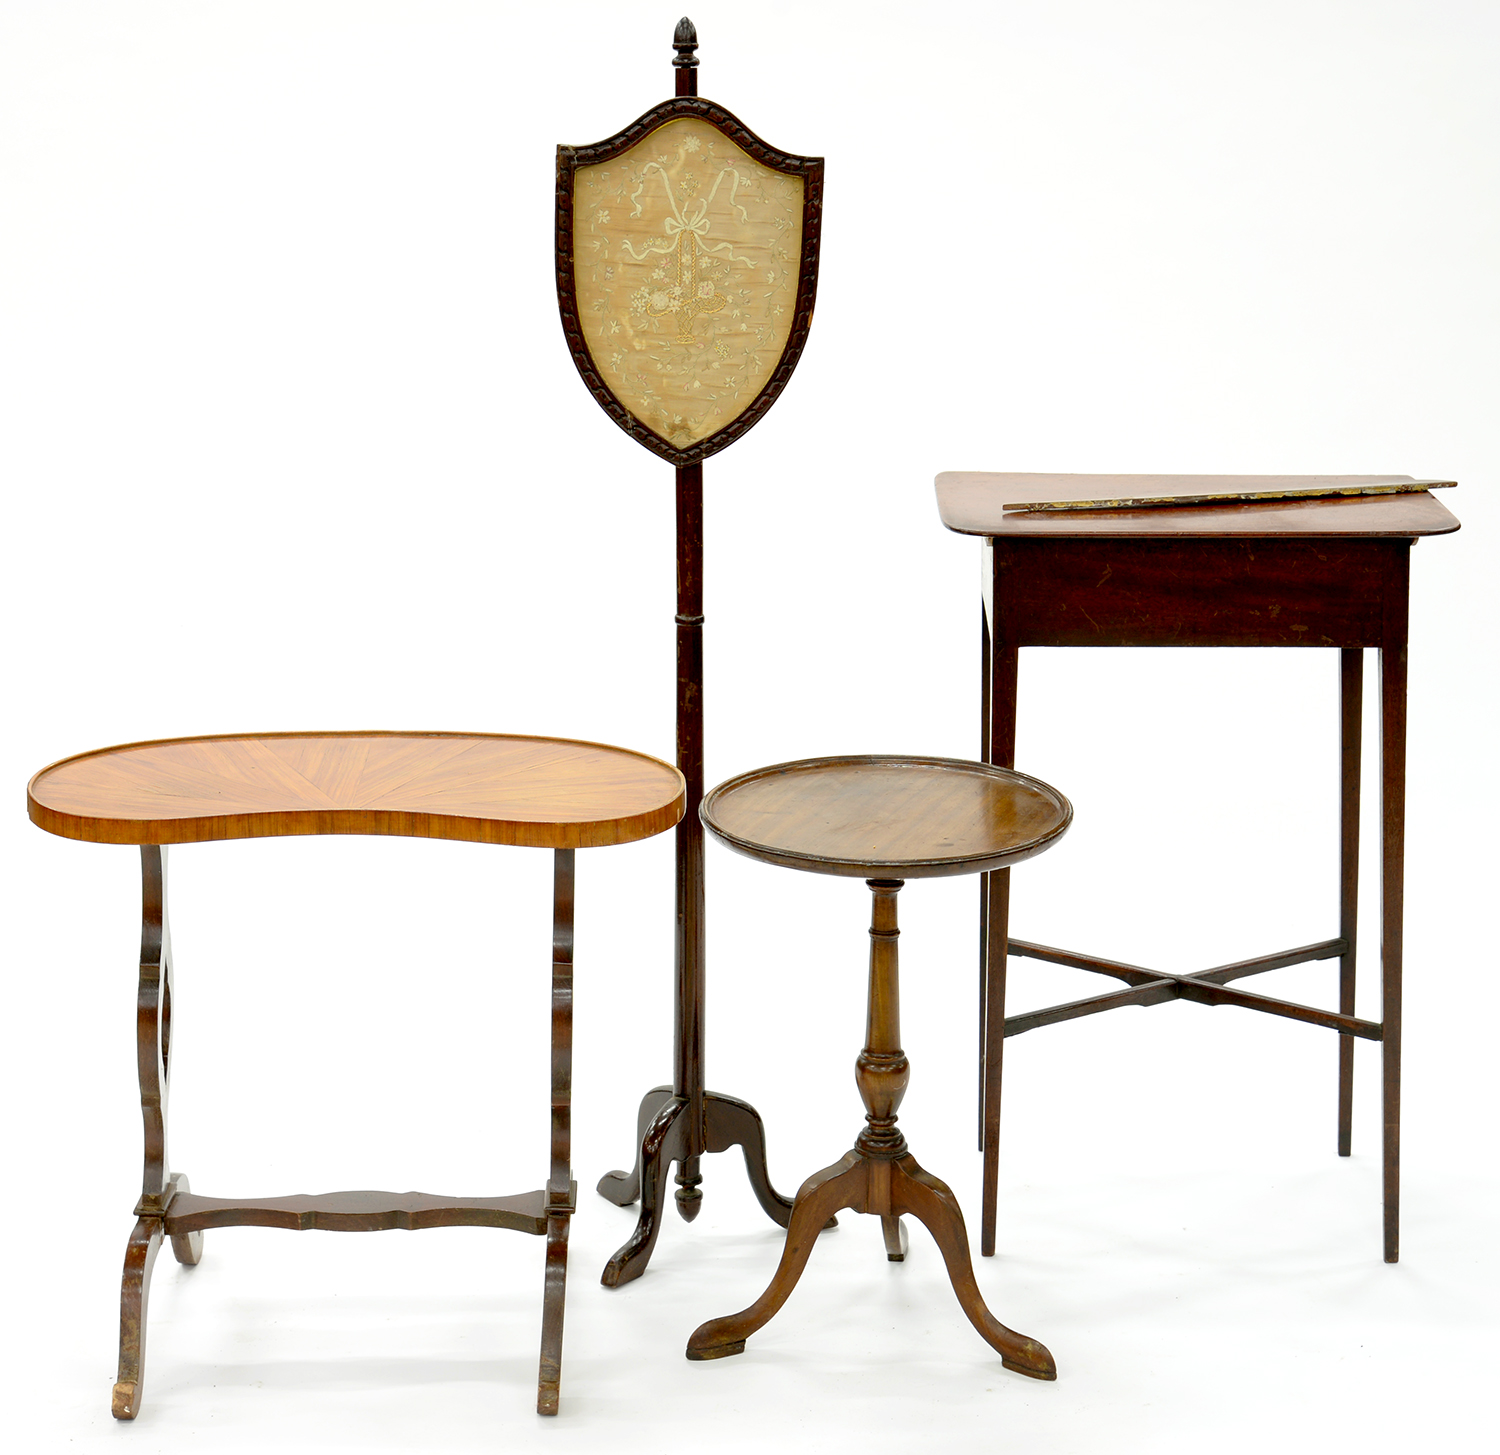 Lot 771 - A VICTORIAN MAHOGANY POLE SCREEN WITH NEEDLEWORK BANNER, KIDNEY SHAPED TABLE, TRIPOD TABLE, ETC